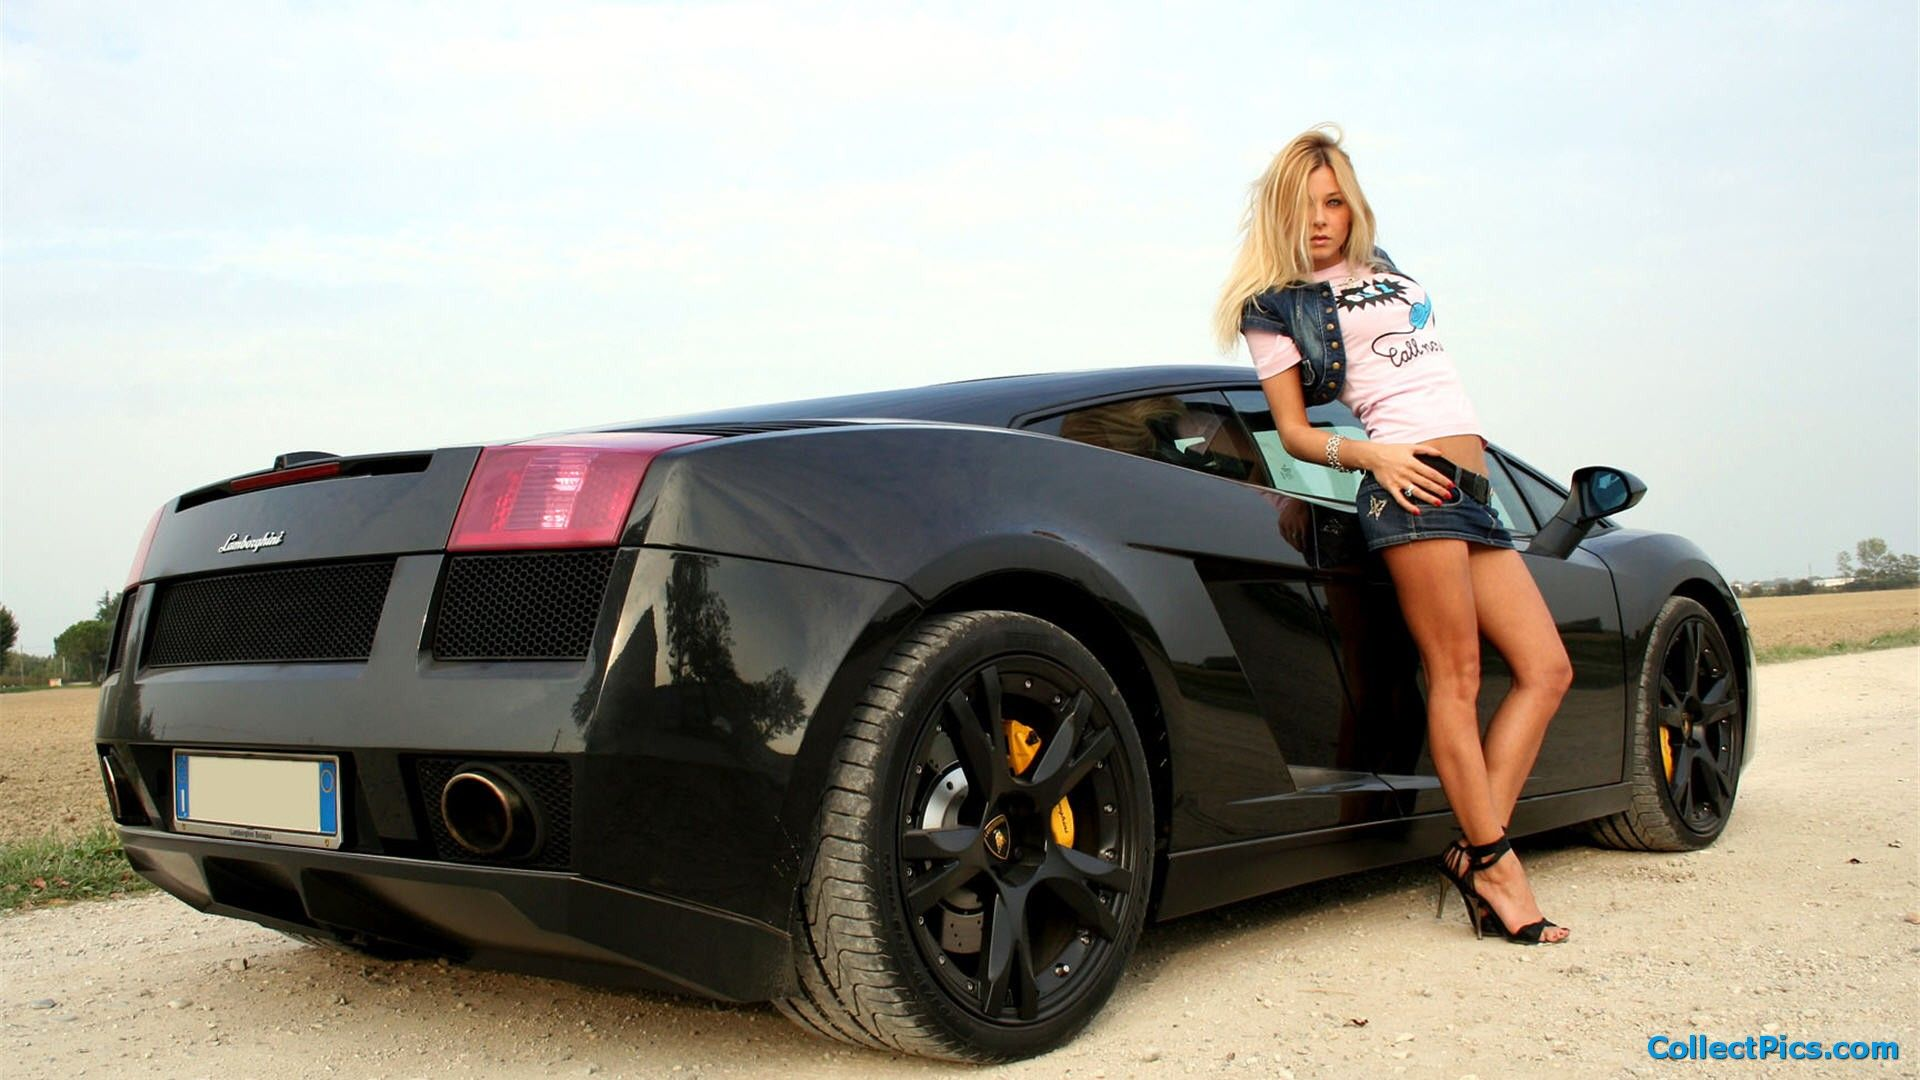 See Awesome Cars and Sexy Girls in 11 Breathtaking Photos